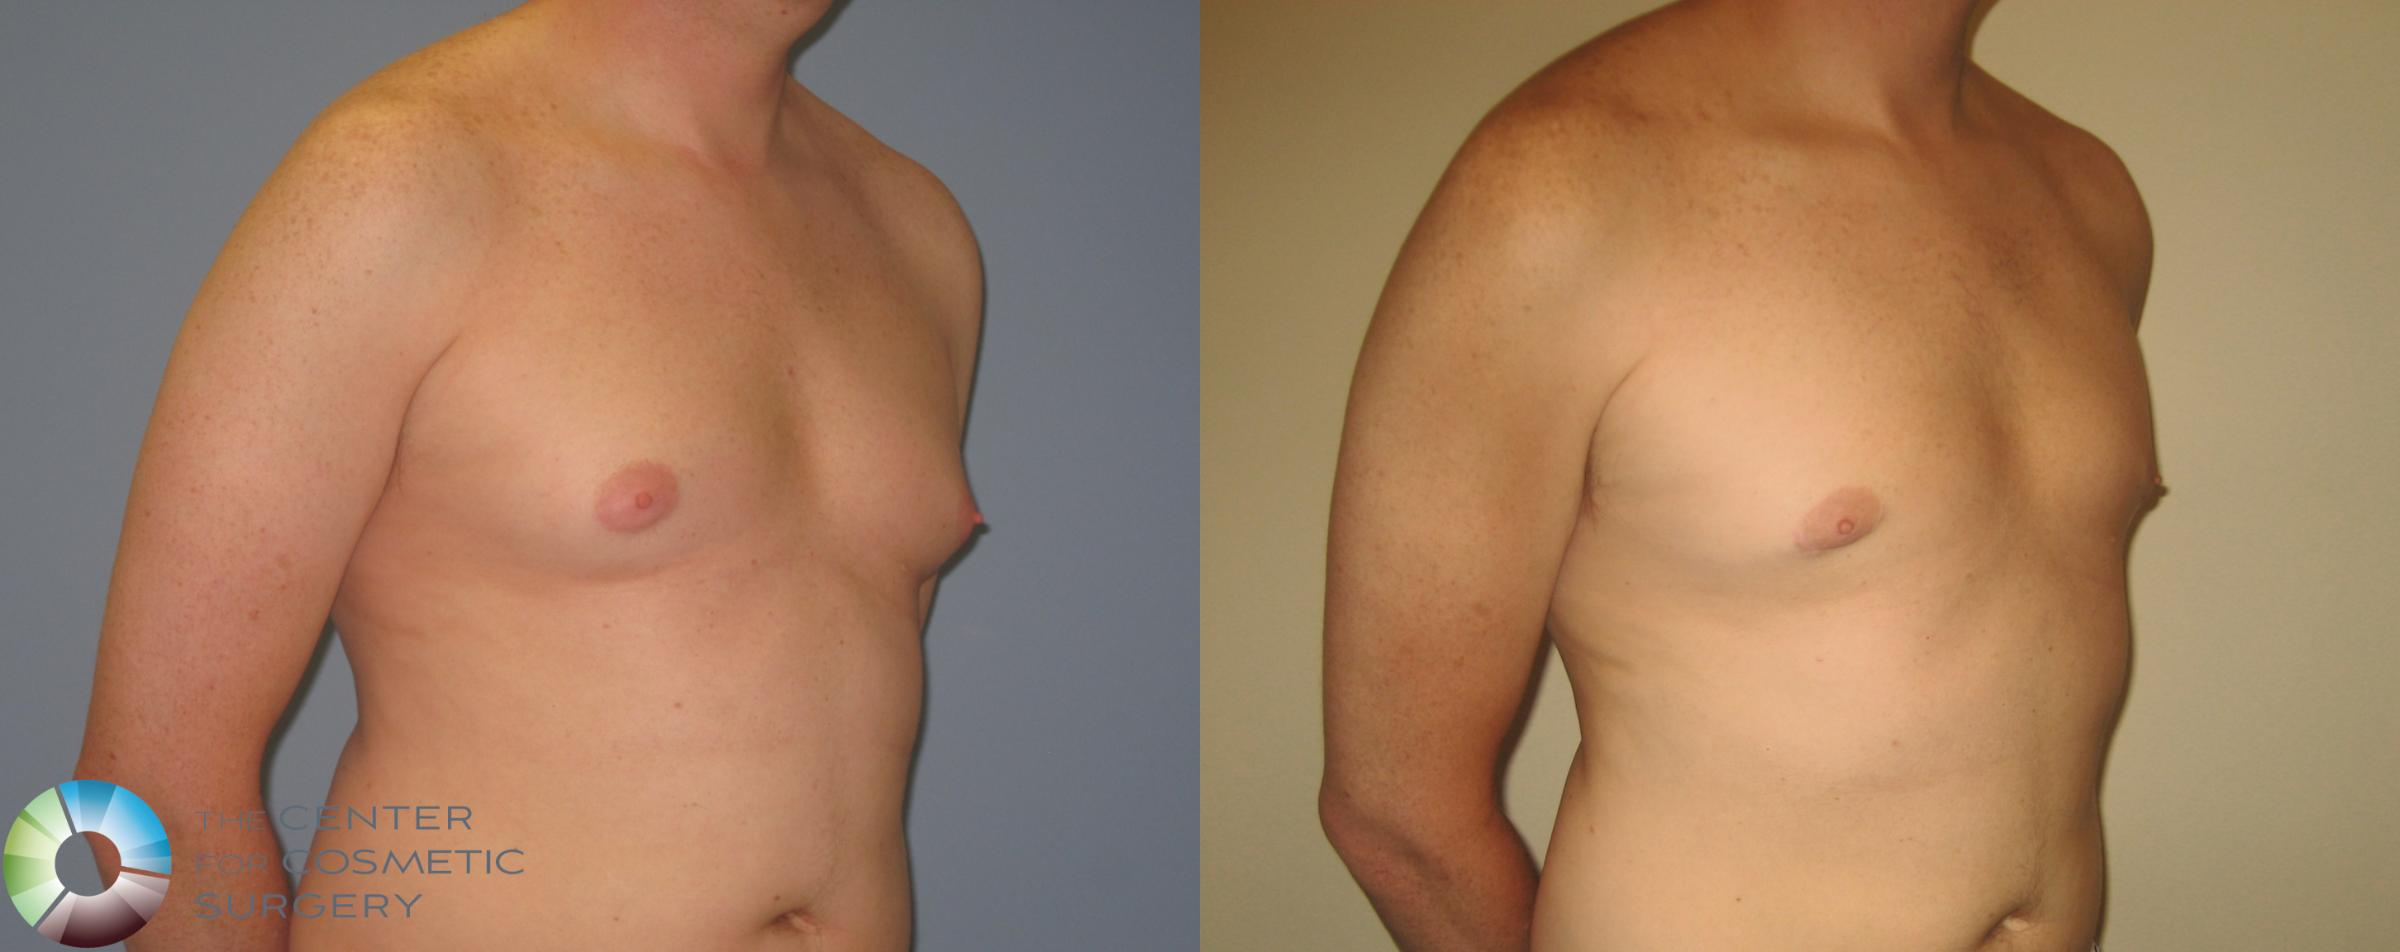 Male Breast Reduction (Gynecomastia) Case 452 Before & After View #1 | Golden, CO | The Center for Cosmetic Surgery